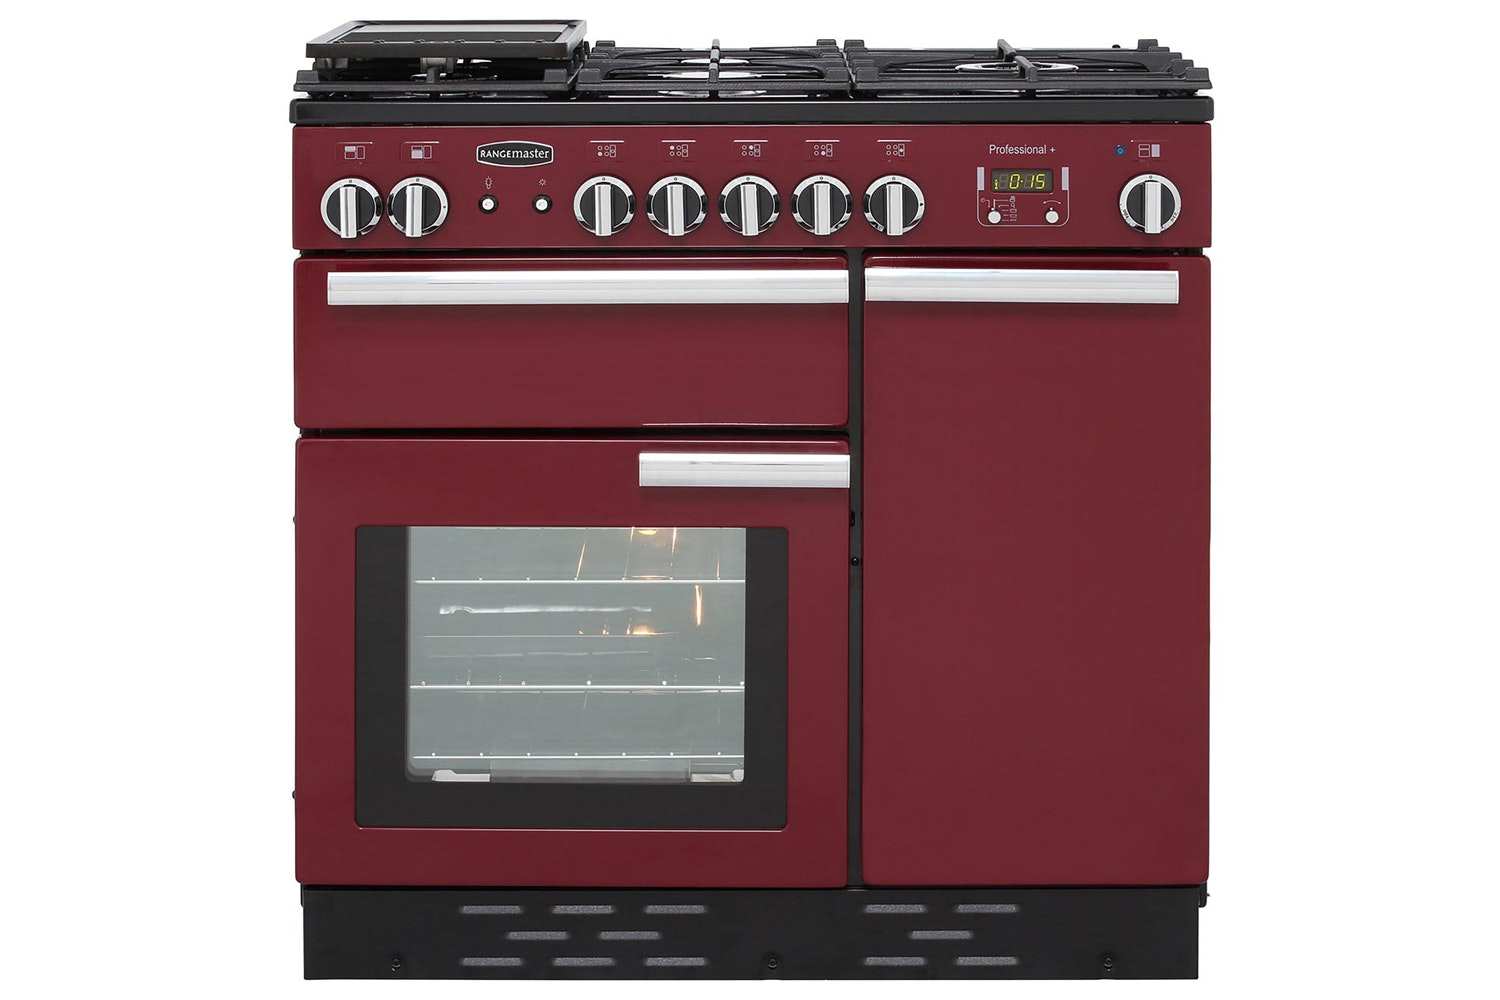 Rangemaster Professional Plus 90cm Gas Range Cooker | PROP90NGFCY/C | Cranberry